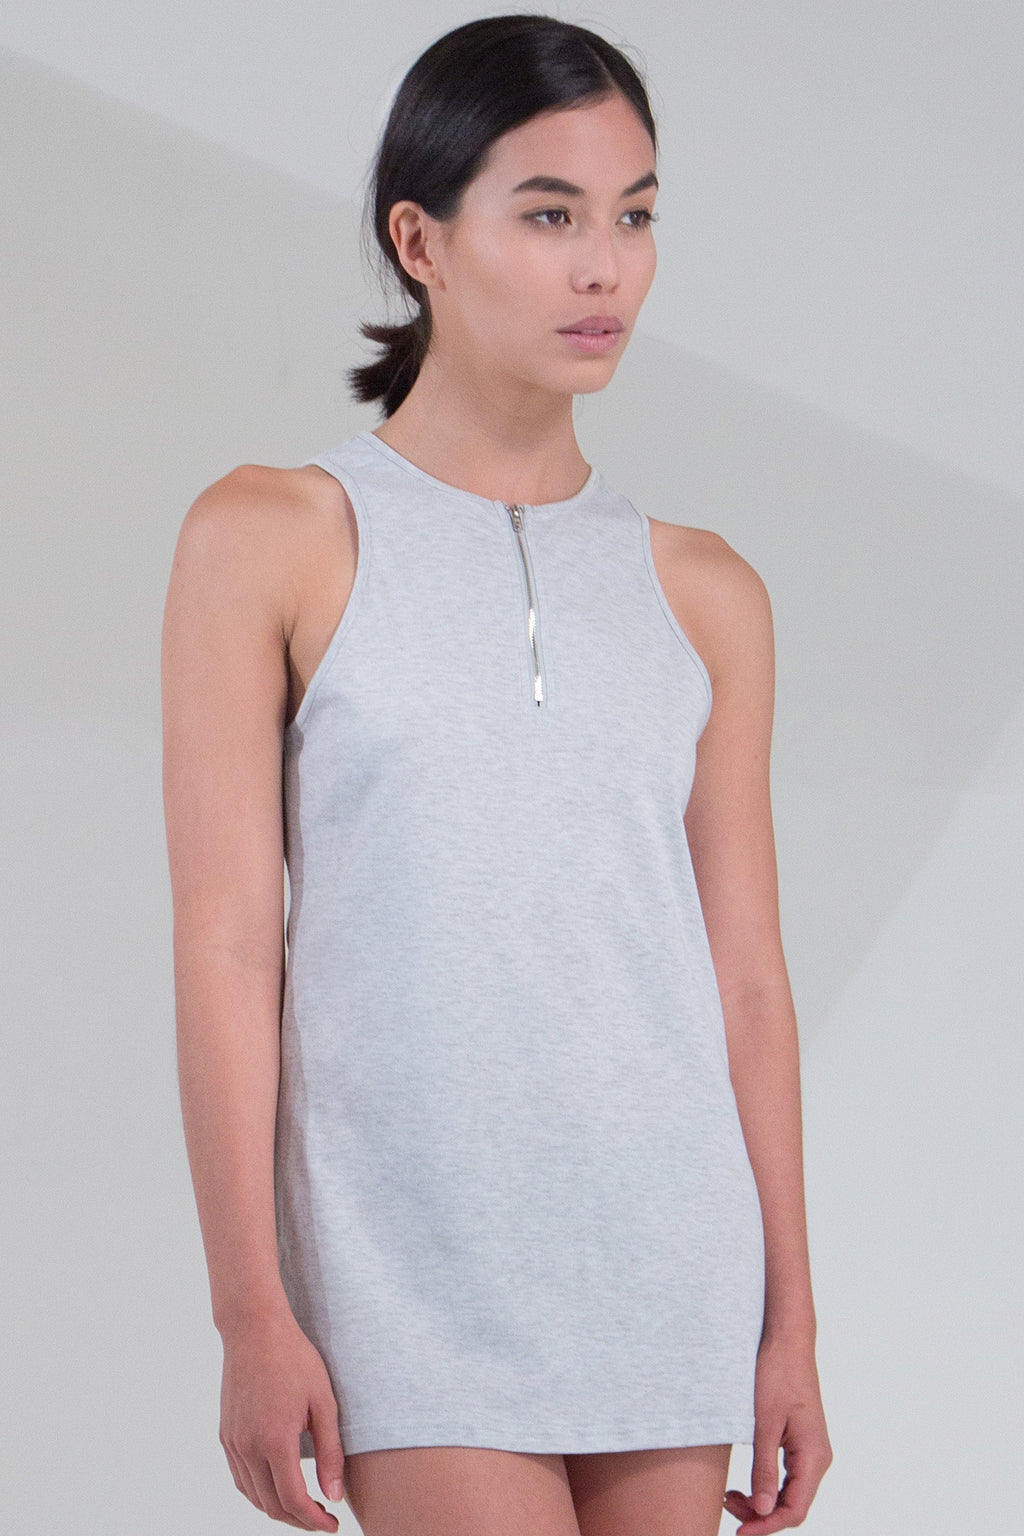 - LAO - Spirit Top Suave Gris